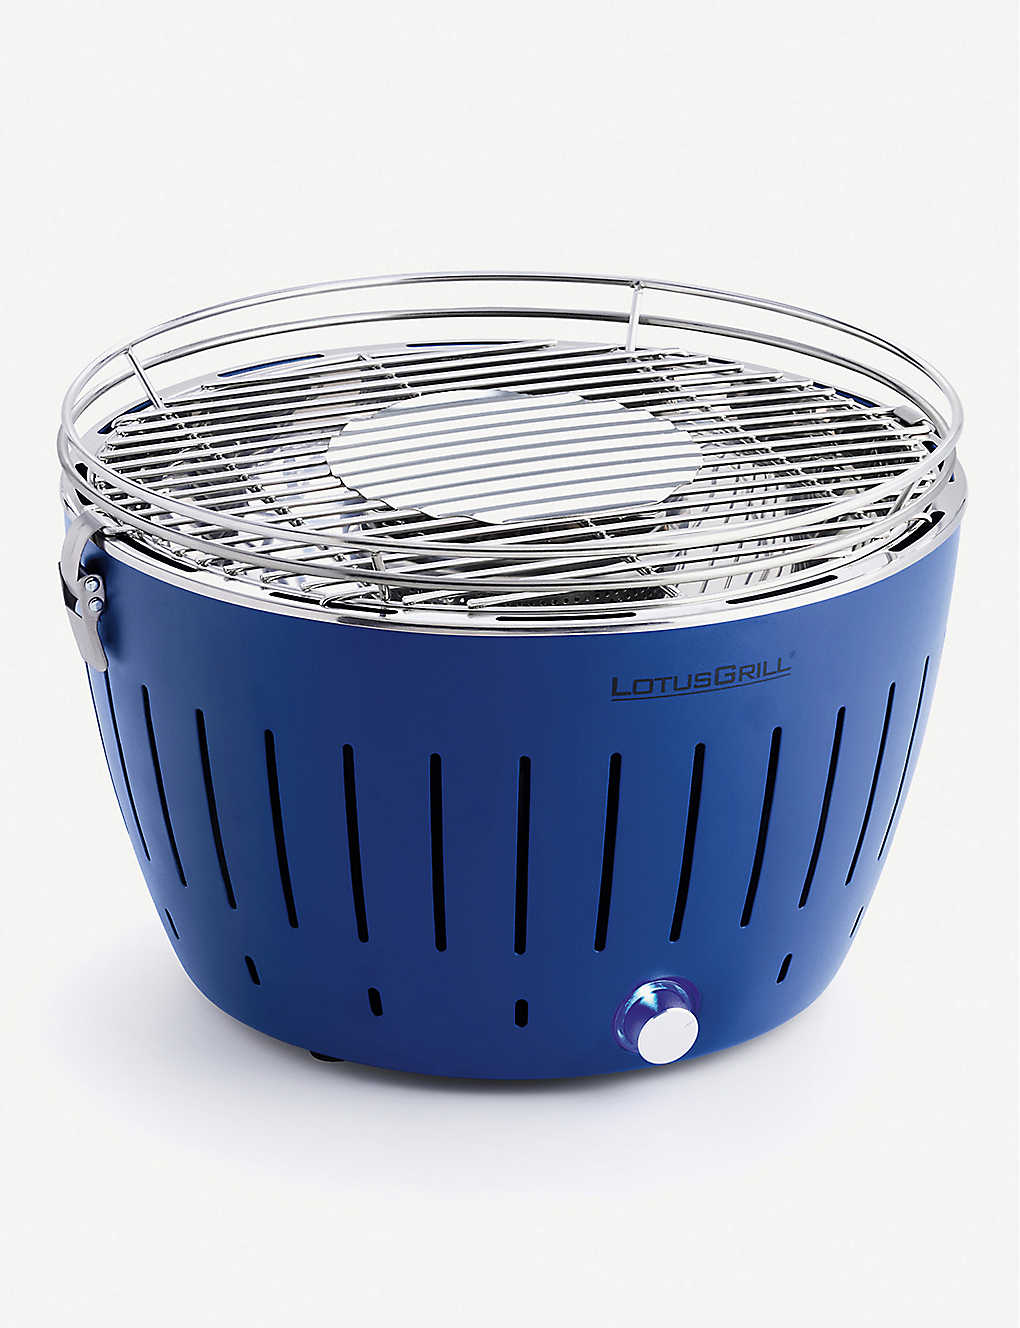 LOTUS GRILL: Standard stainless steel smokeless BBQ grill